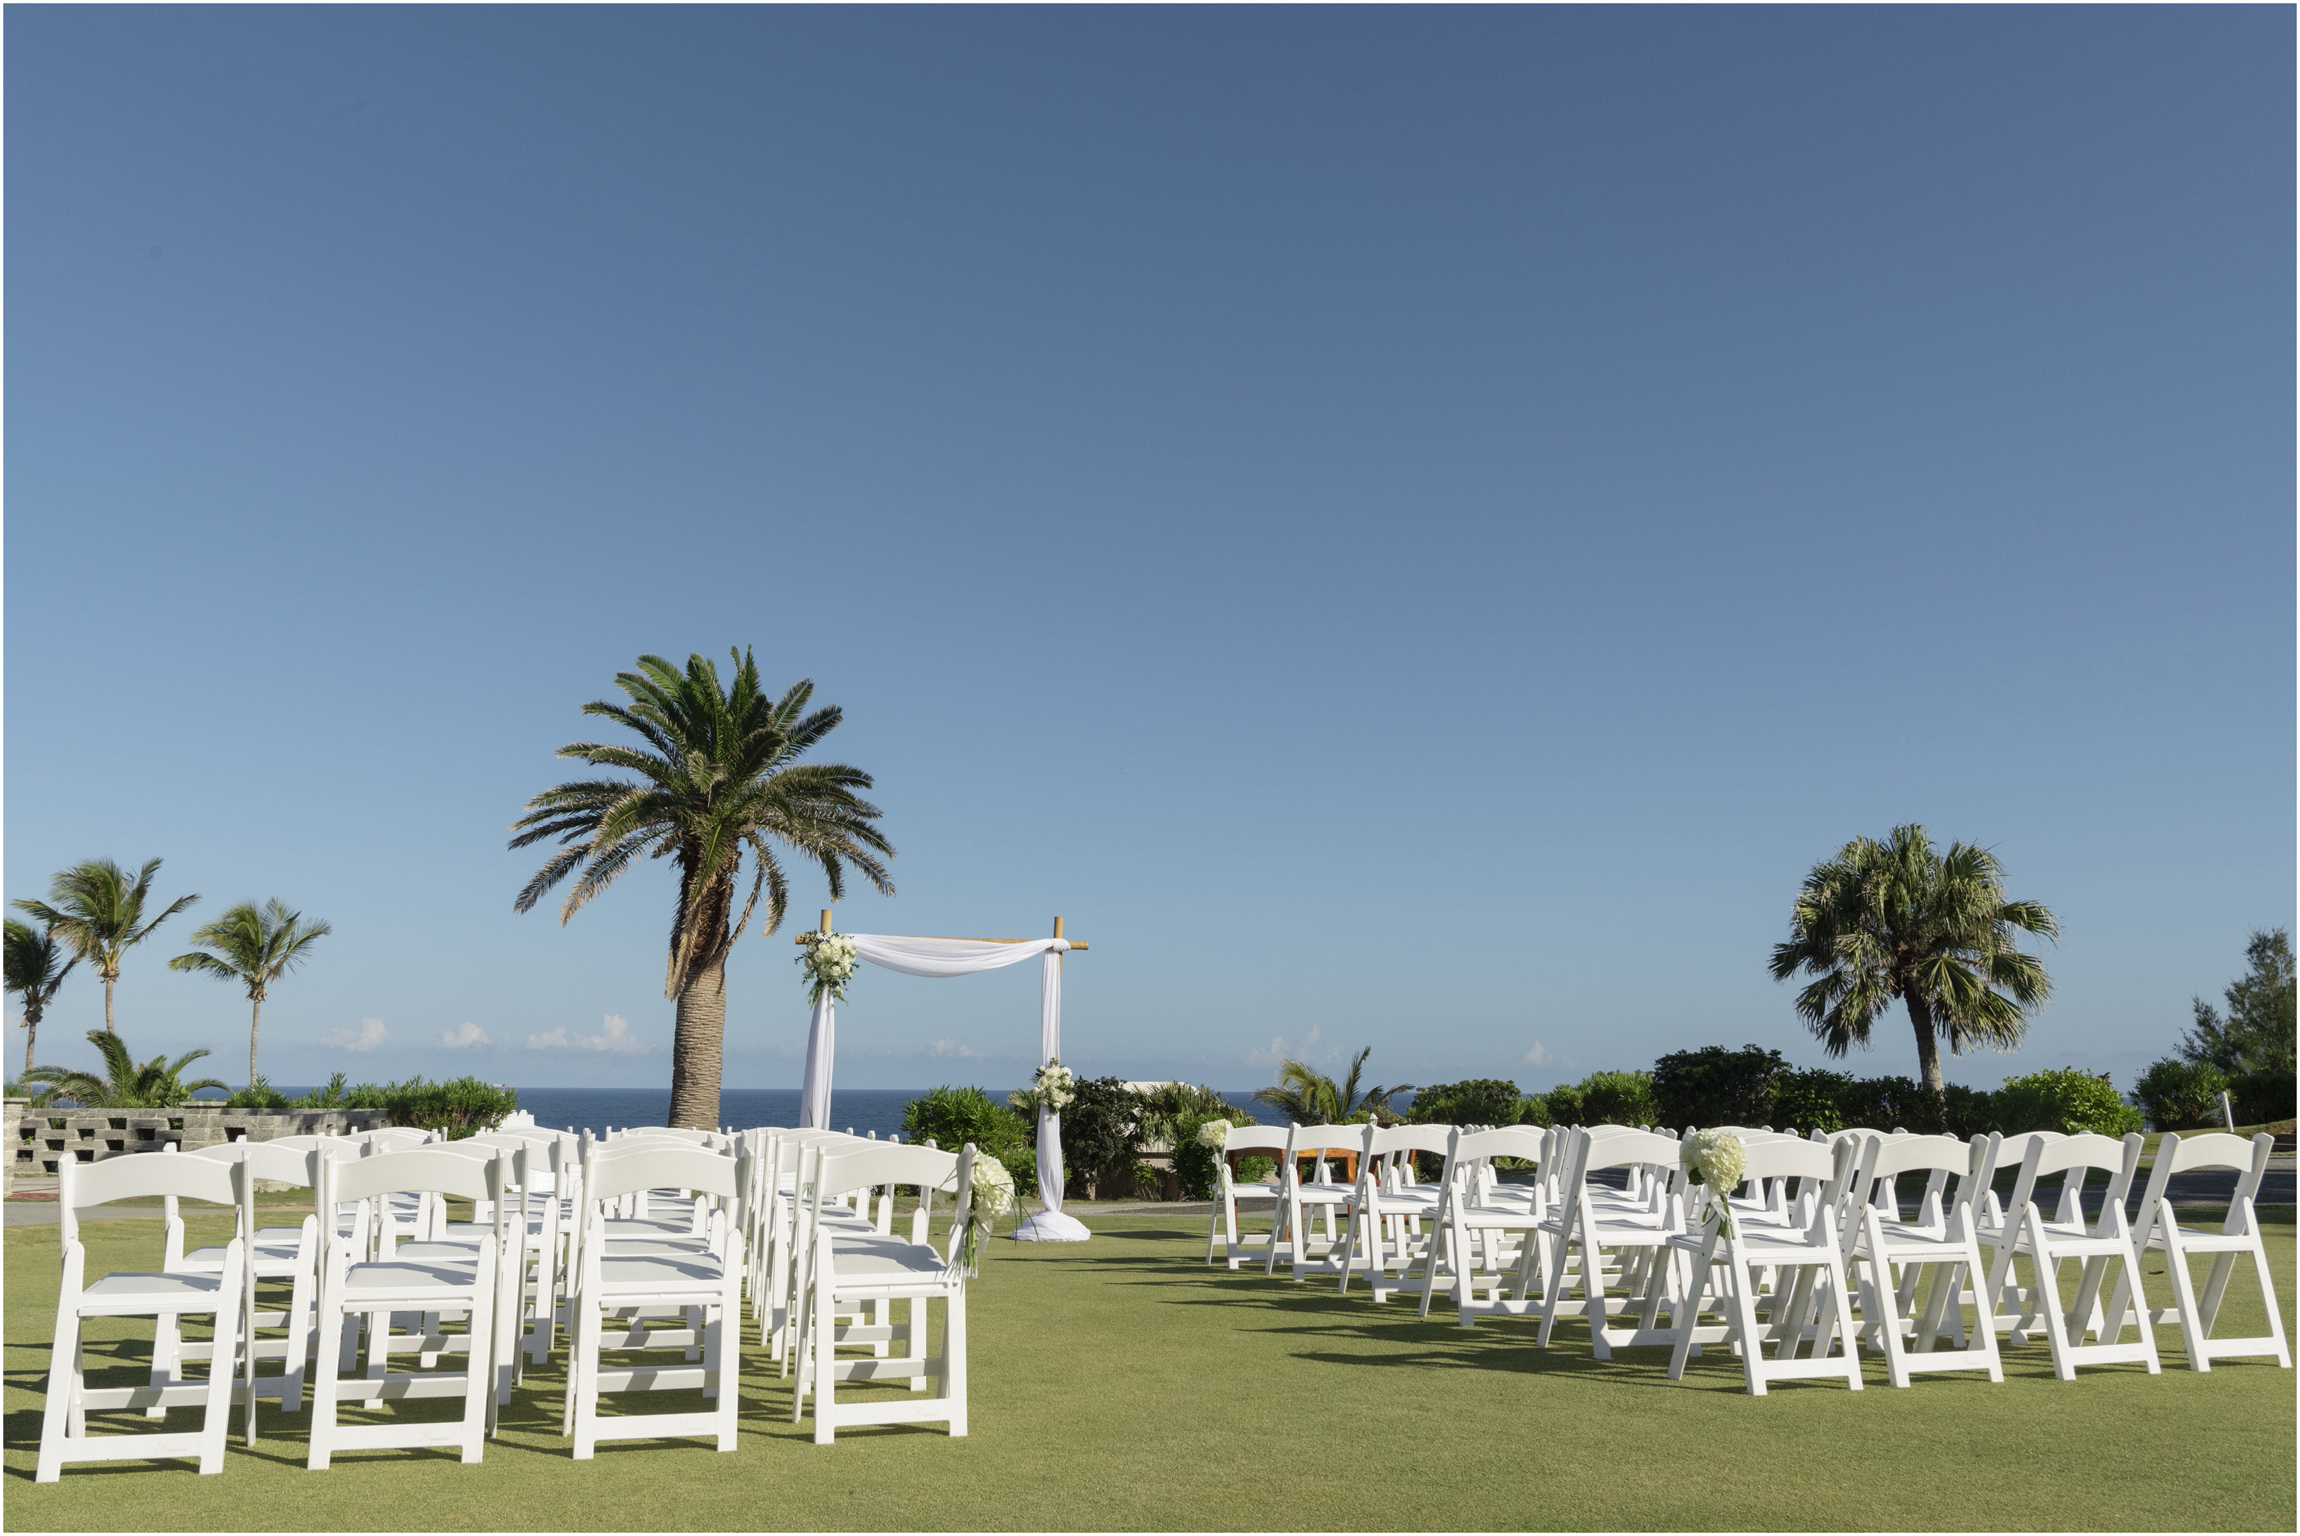 ©FianderFoto_Catherine_Kenny_Coral+Beach+Wedding_175.jpg